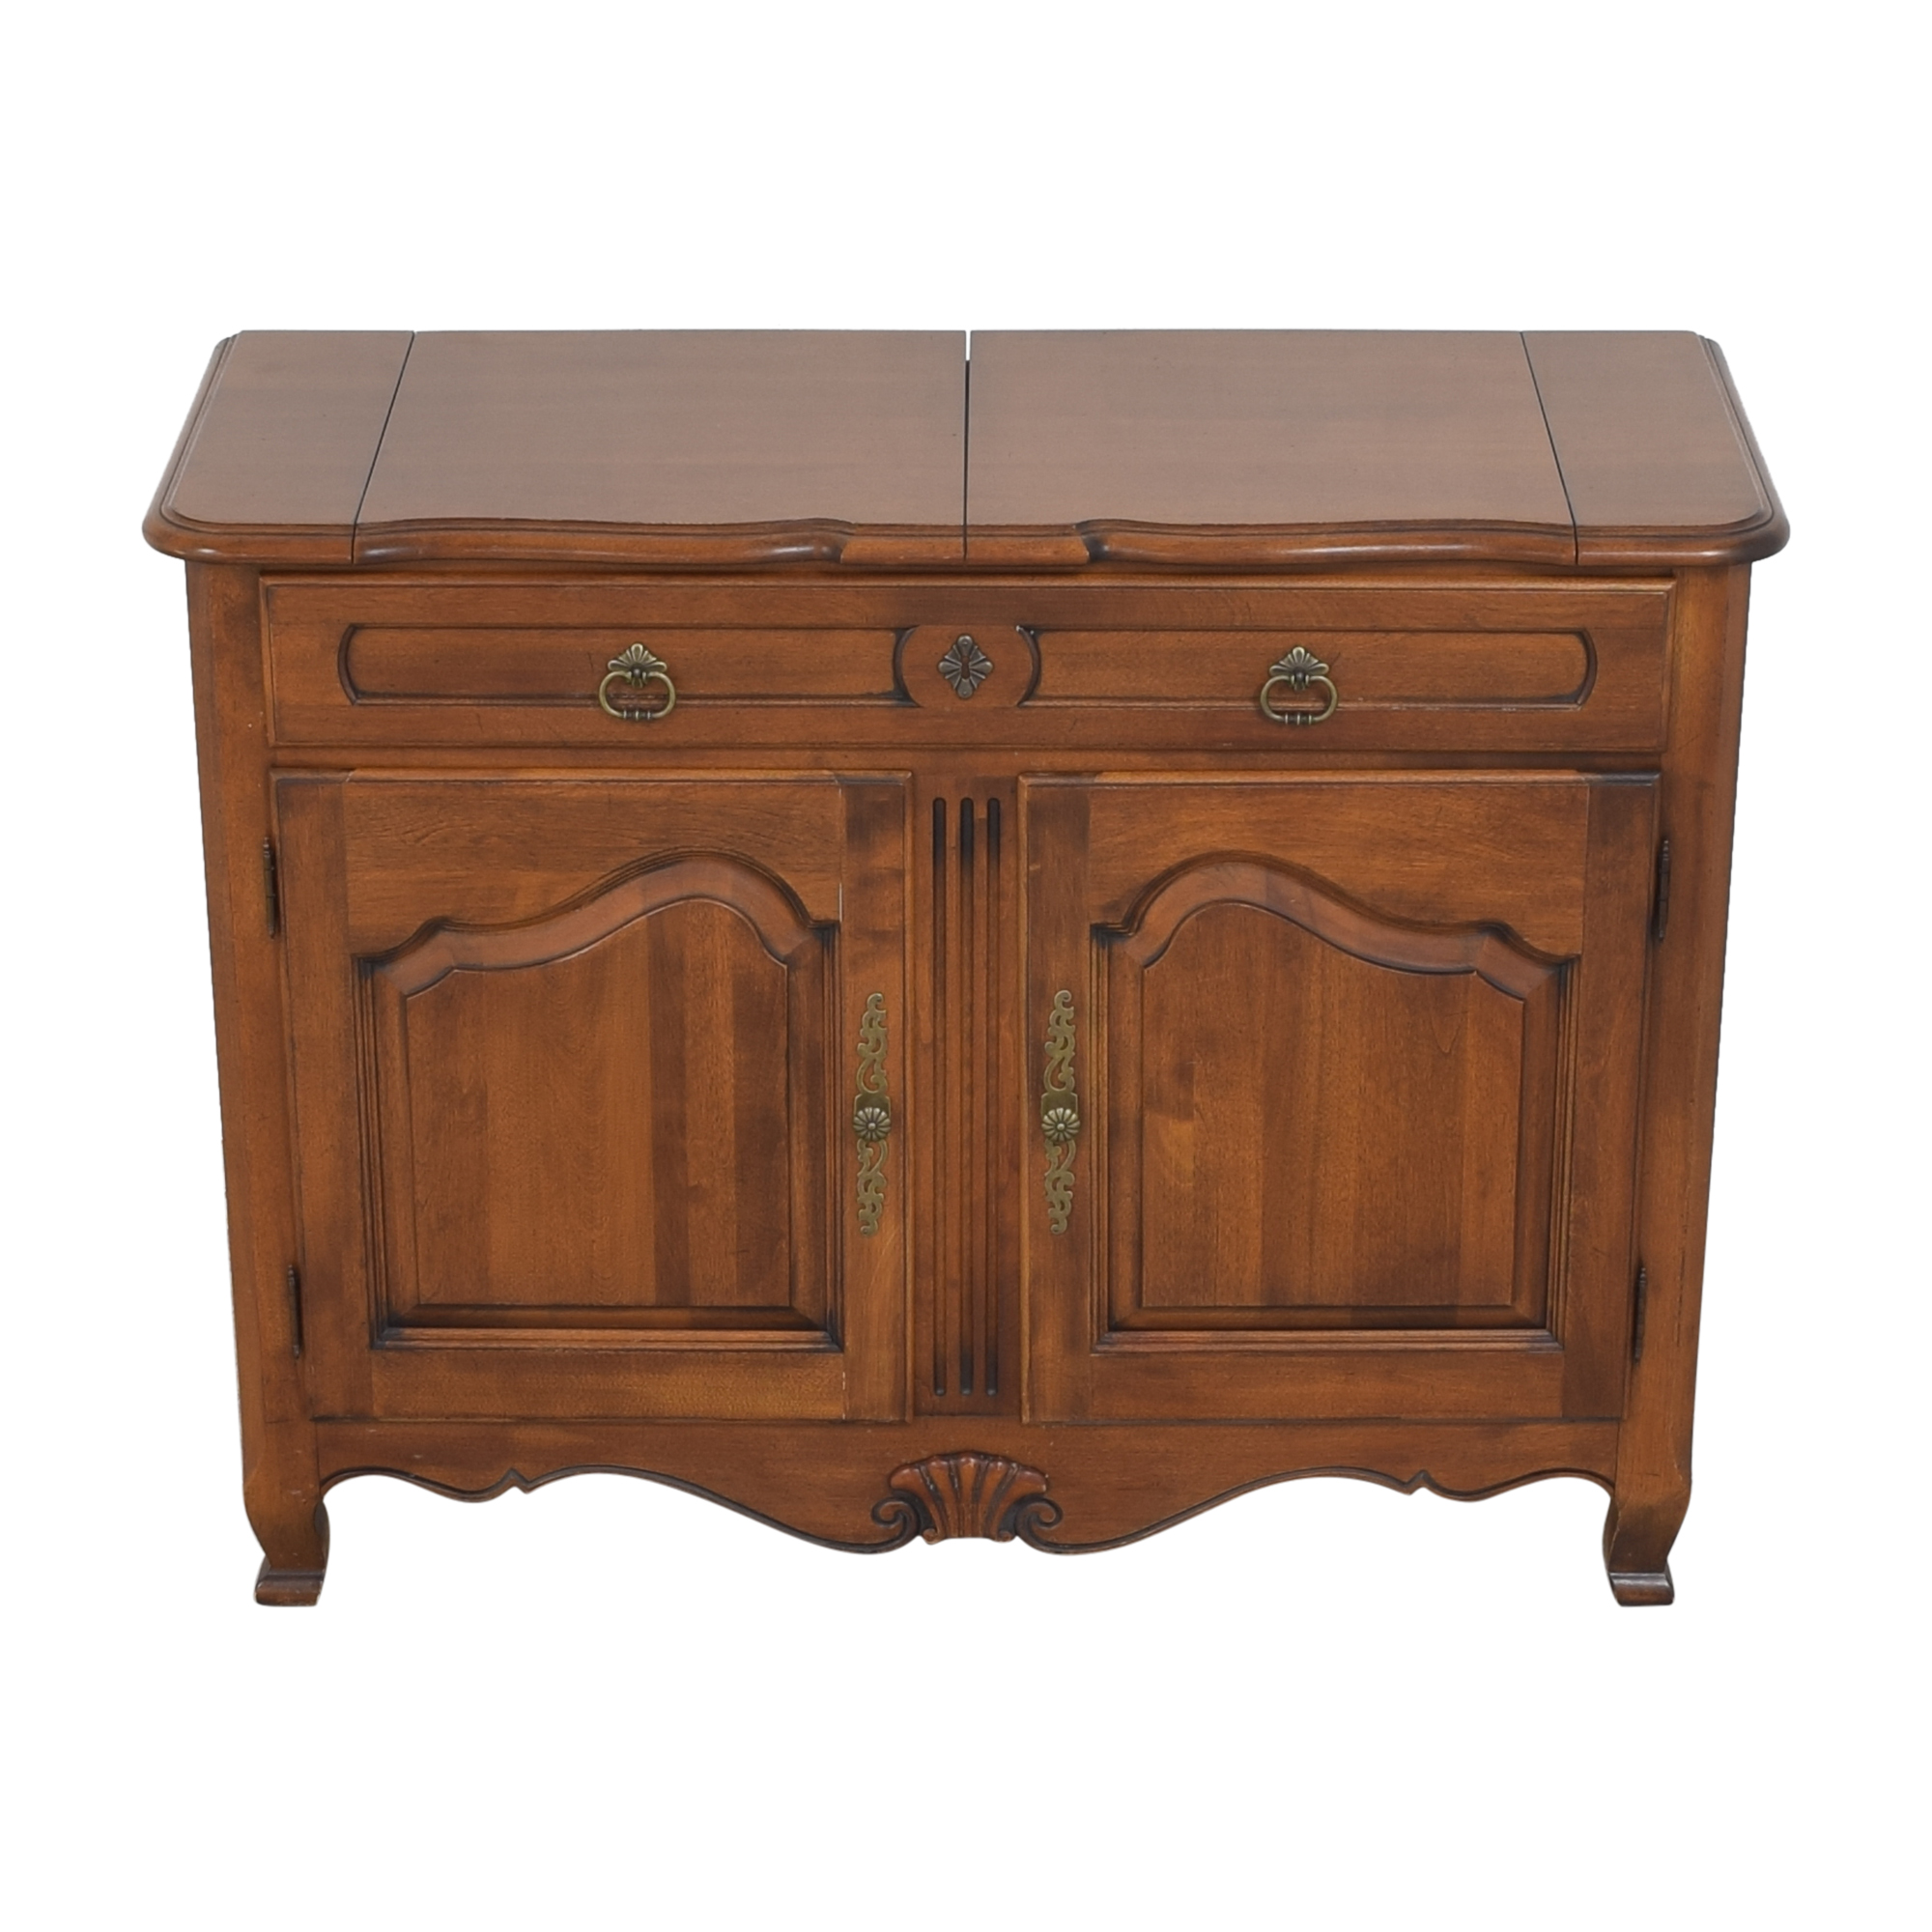 Ethan Allen Ethan Allen Country French Flip Top Server Buffet on sale